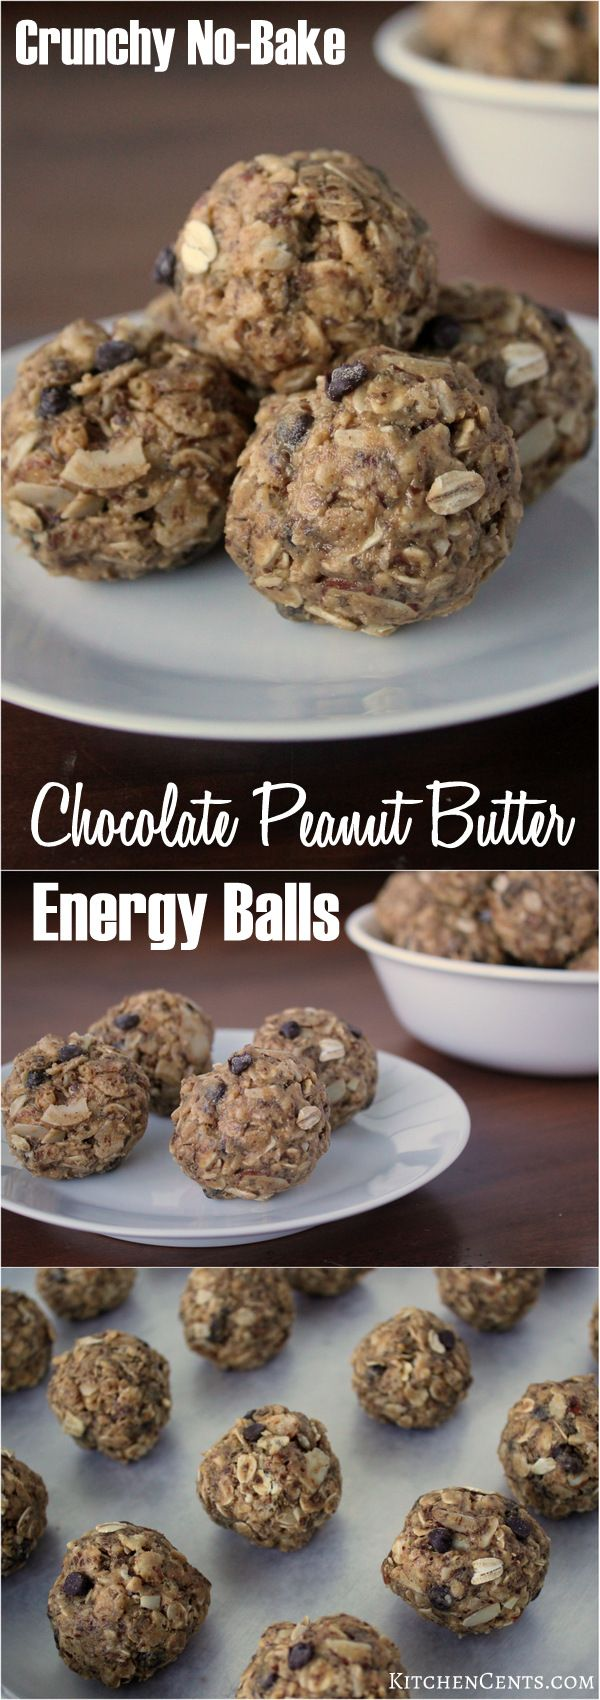 Easy Crunchy No-Bake Chocolate Peanut Butter Energy Balls    are great for breakfast, lunch, or a quick on-the-go snack.  Filled with oats, almonds, flaxseed, peanut butter and more, they're power-filled bits of goodness packed with lots of flavor.